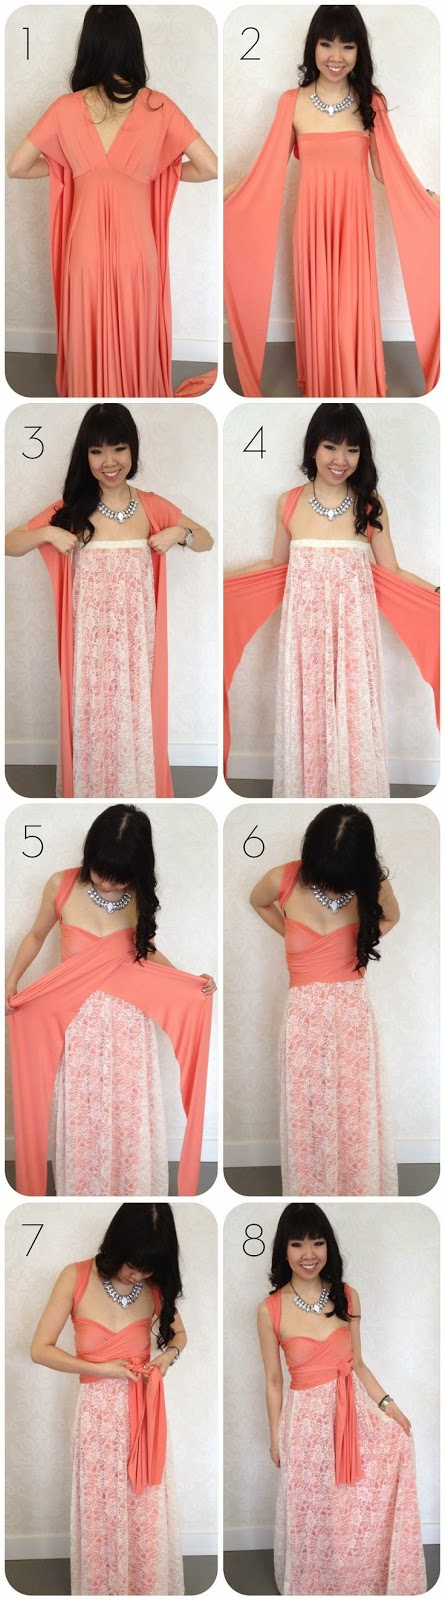 how to add lace to a convertible dress; Patterns/instructions on how to sew an infinity dress